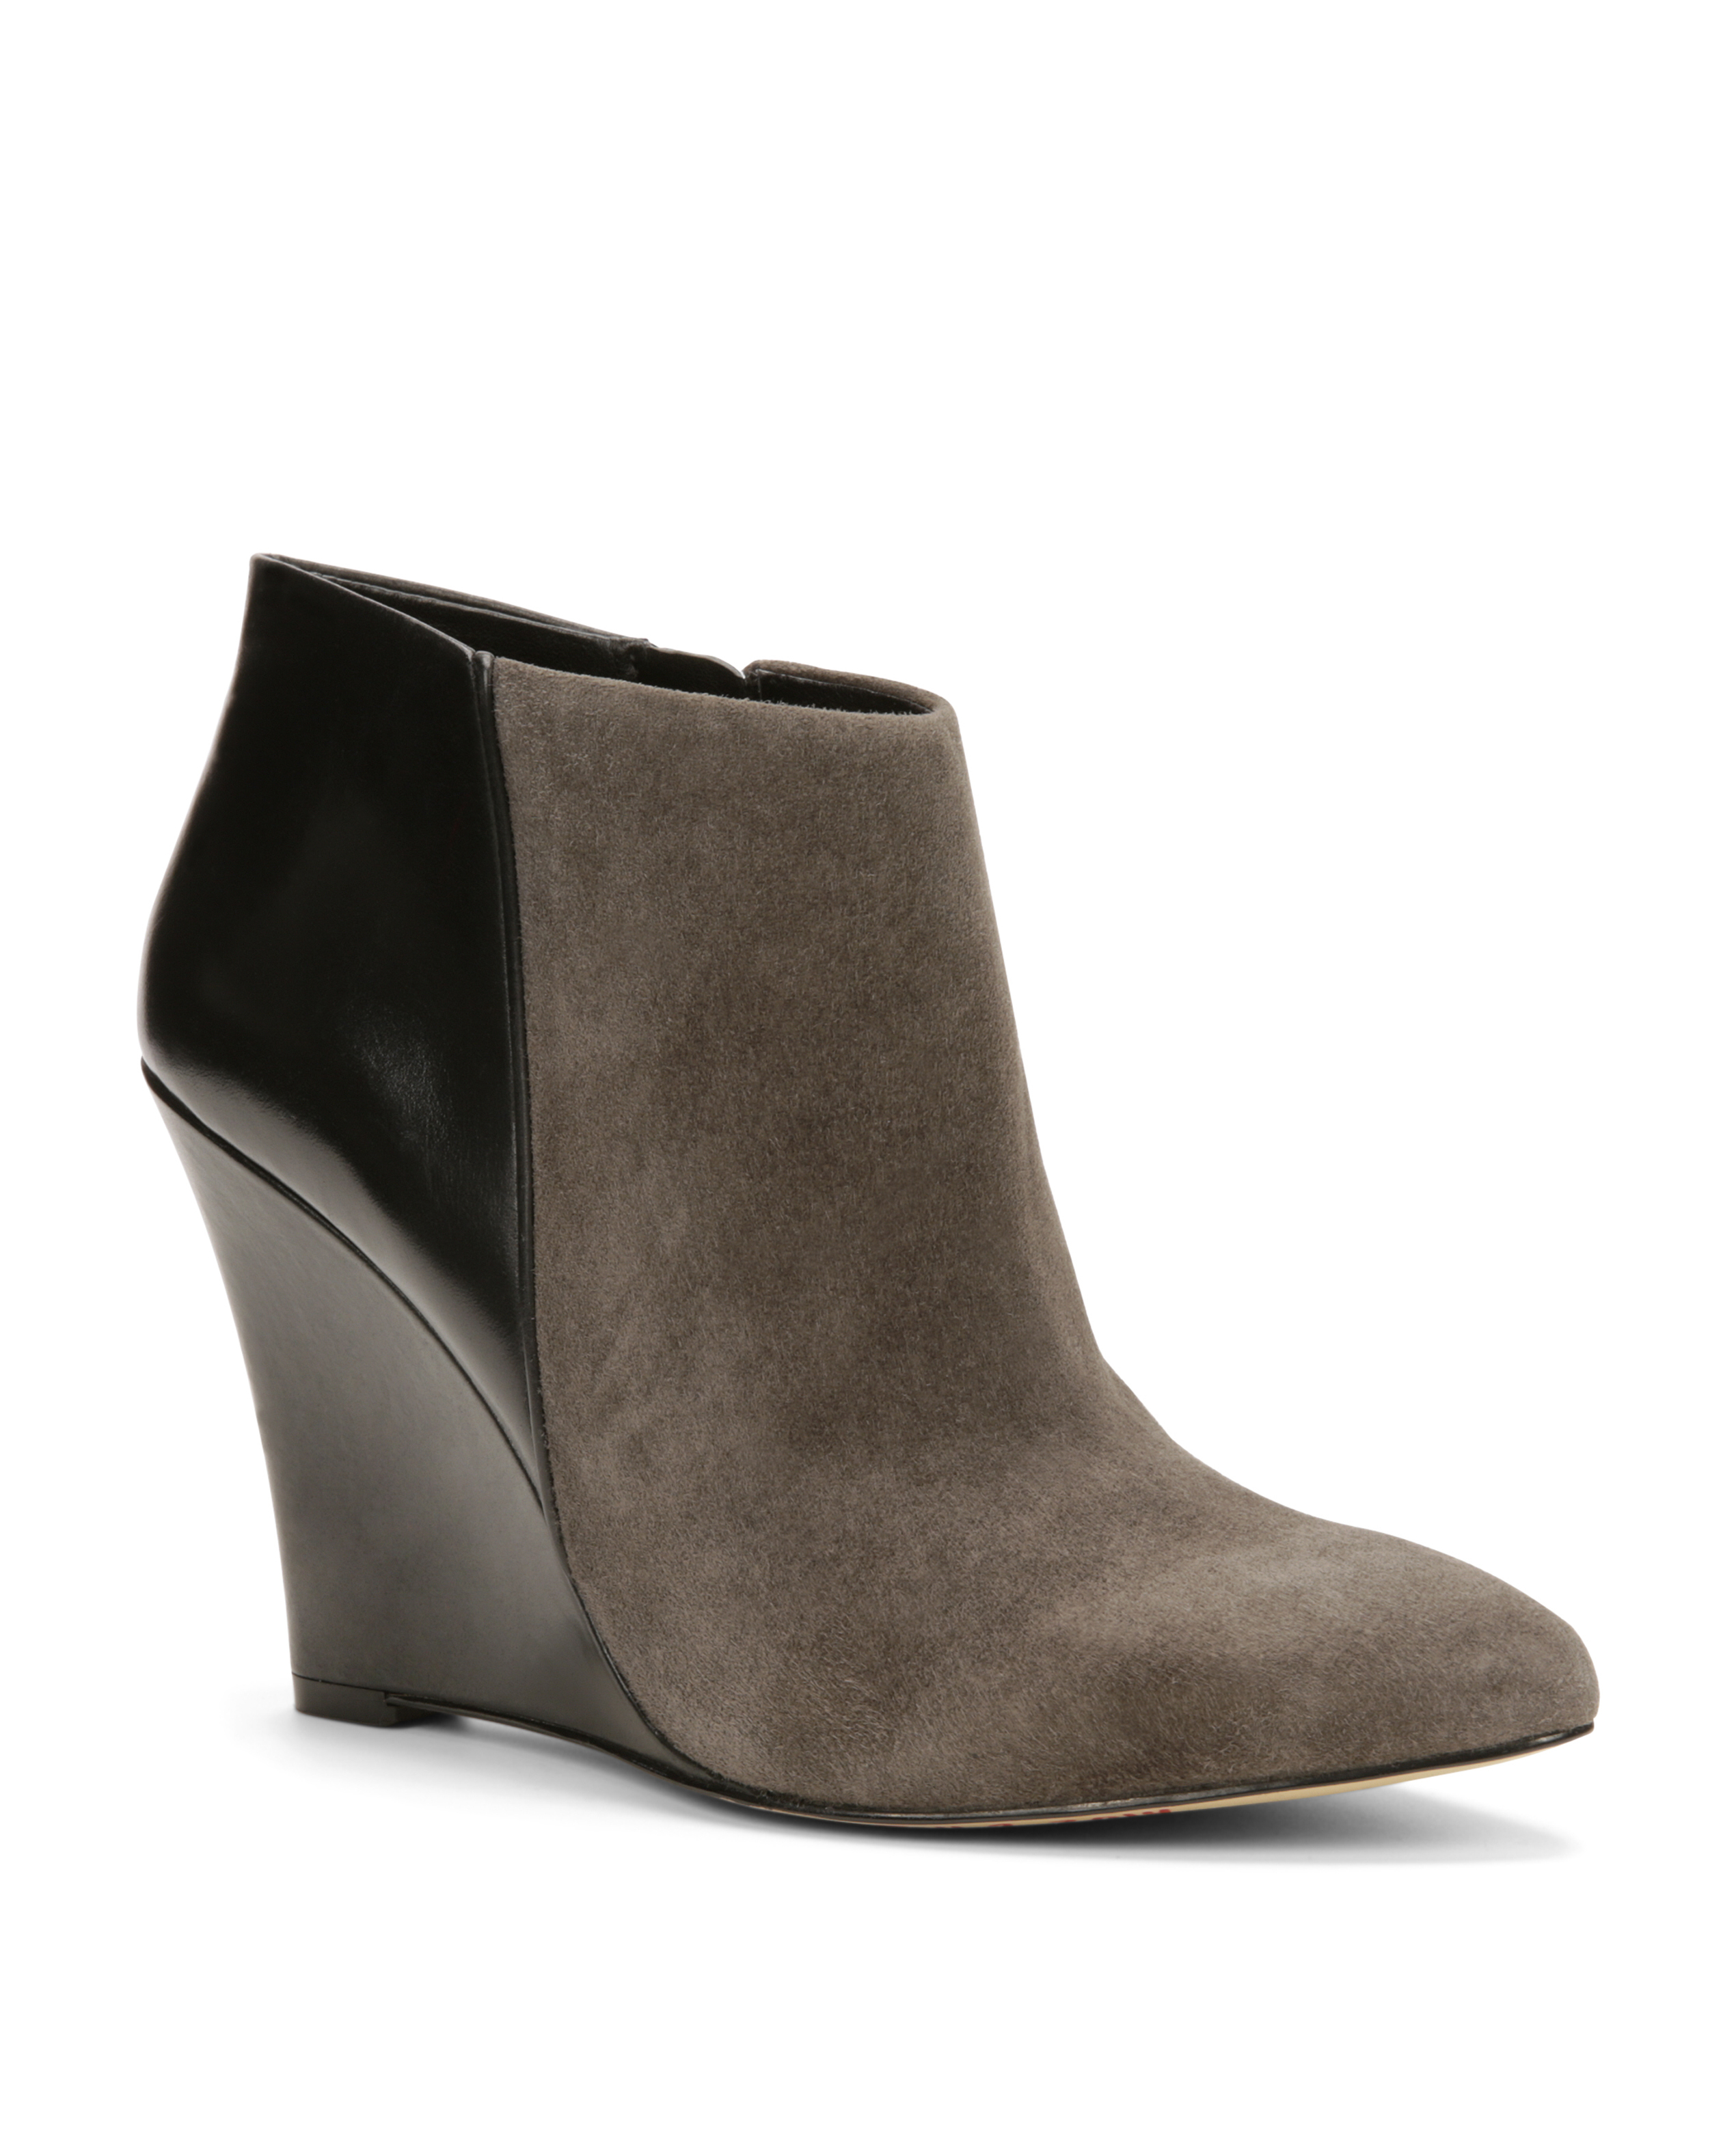 e9ef3903452 Lyst - Ann Taylor Lottie Suede Wedge Boots in Gray